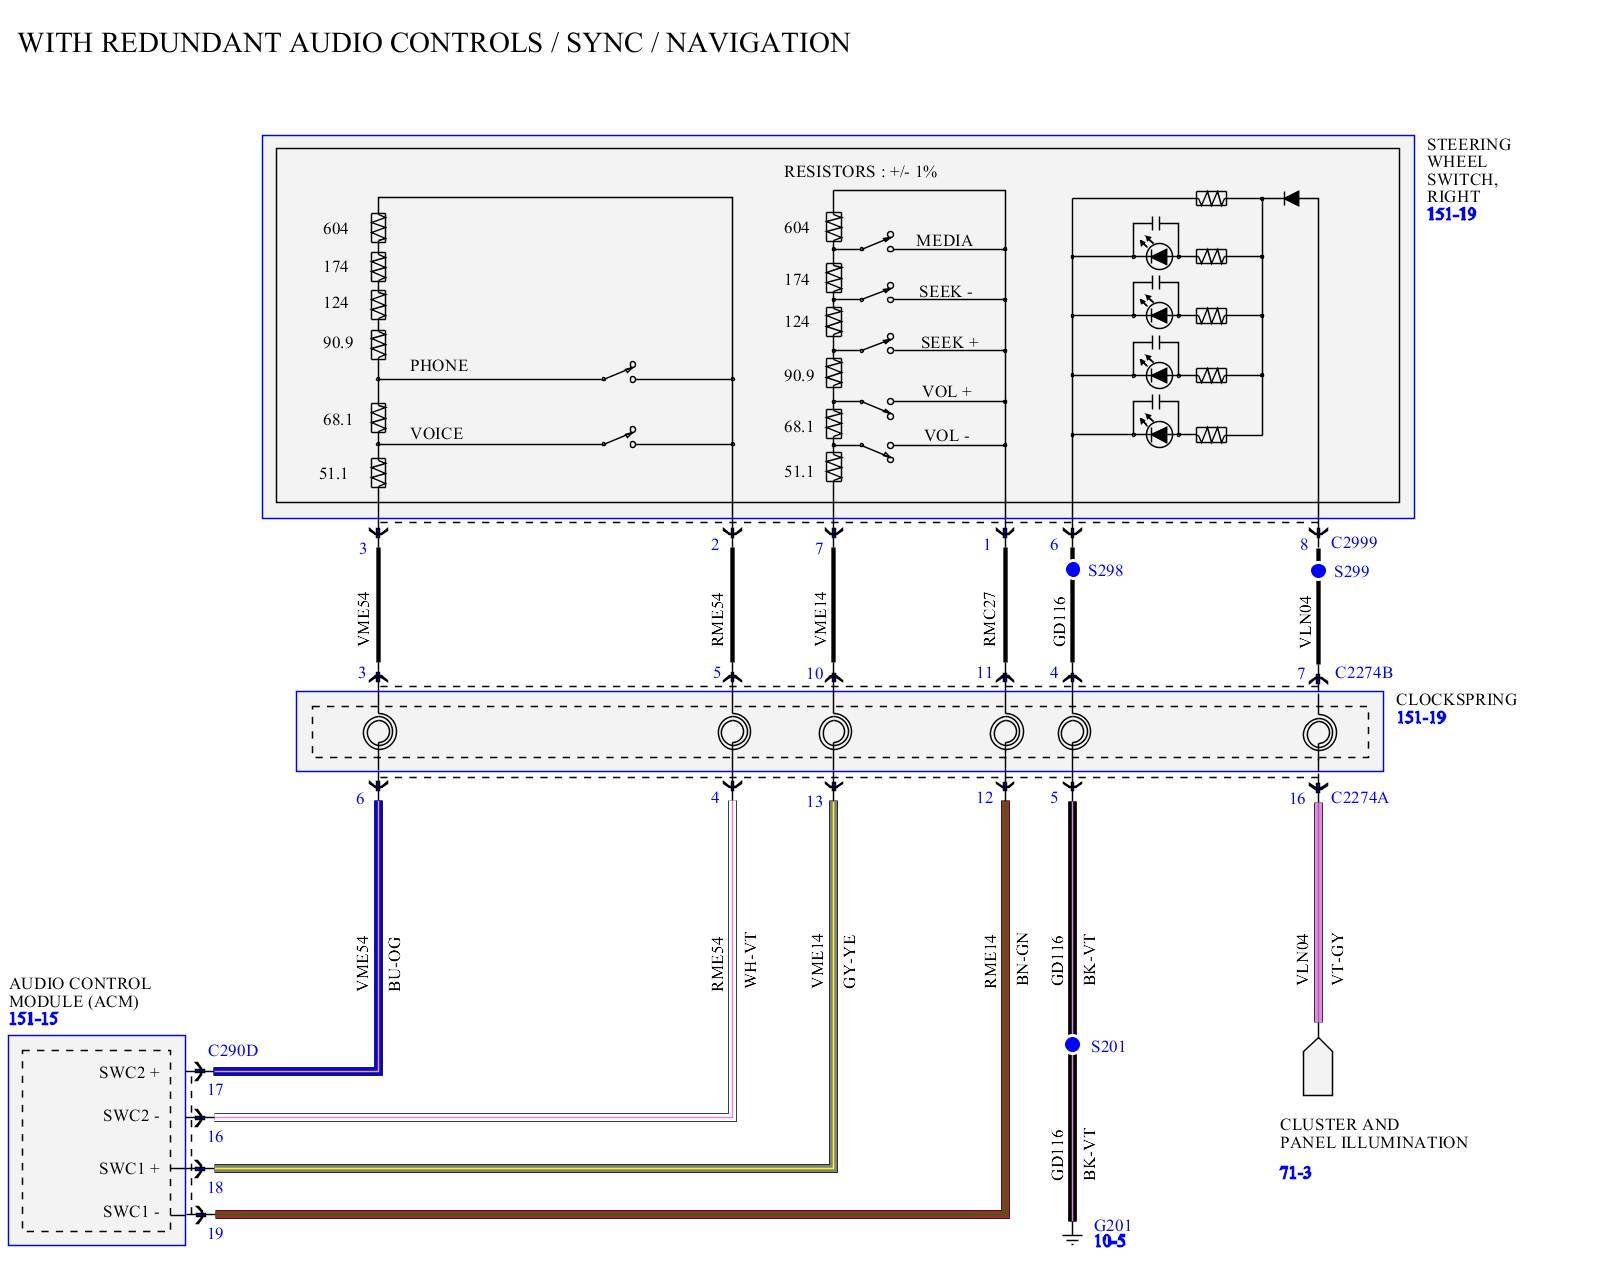 s197 fuse diagram wiring library Volvo S60 Fuse Diagram s550 steering wheel swap the mustang source ford mustang forums s197 fuse diagram s197 audio controls